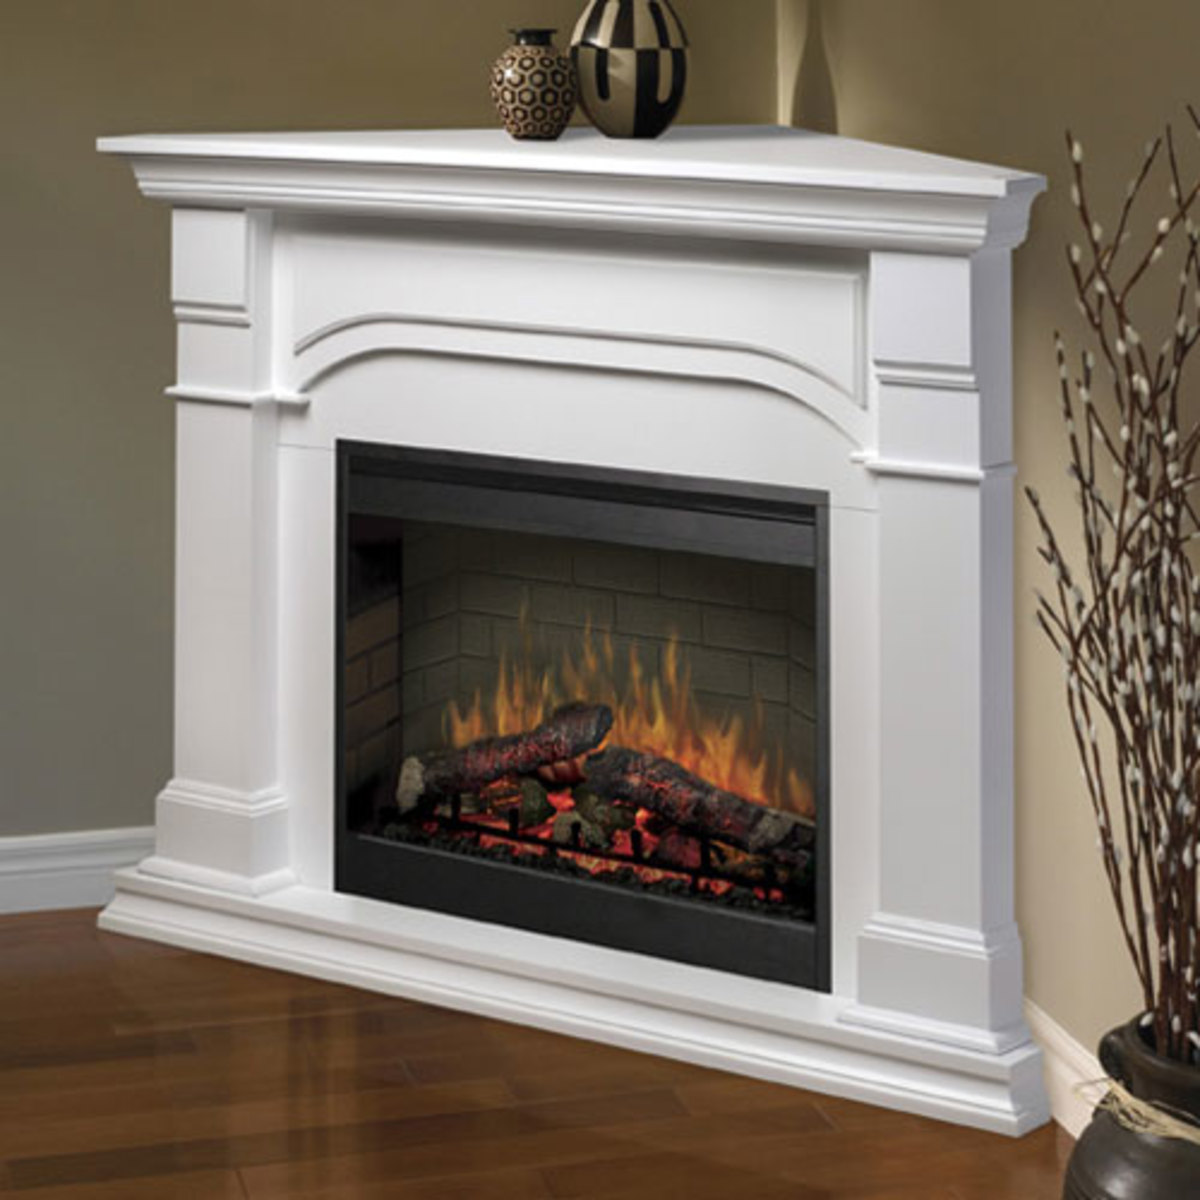 Buy an Electric Fireplace - Make it a Corner Fireplace